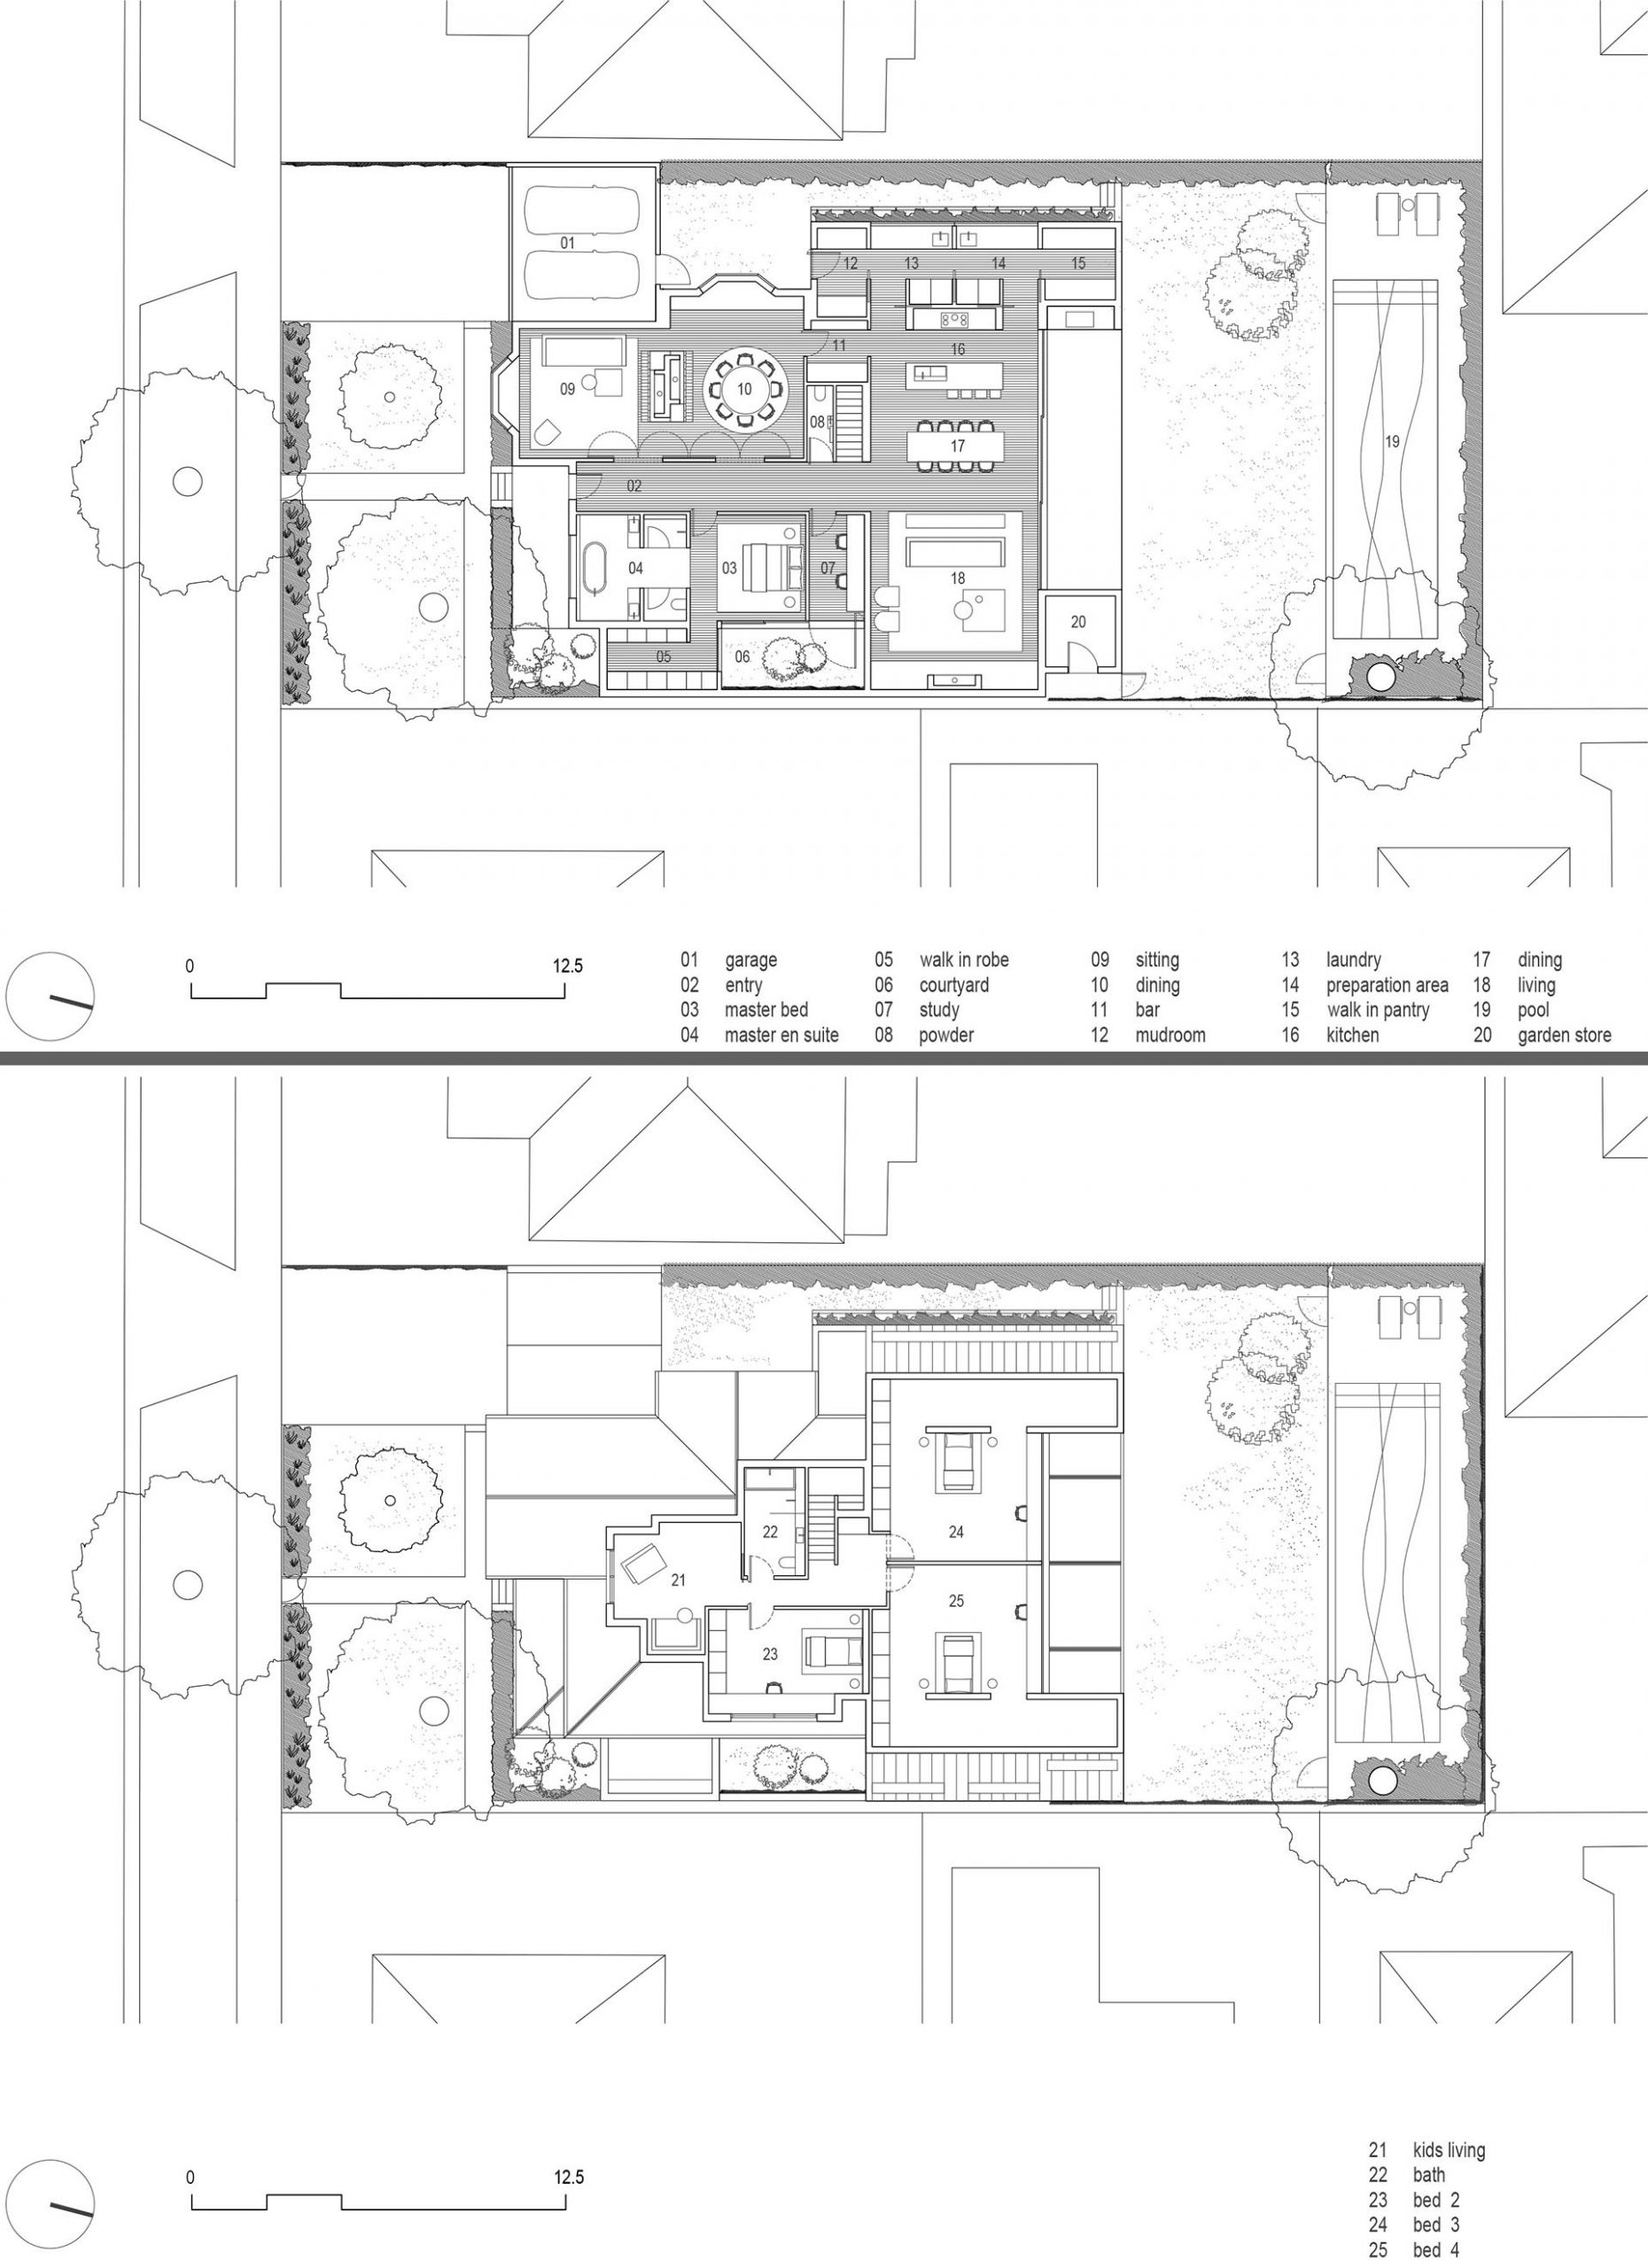 The floor plan of an Australian Federation house with a rear addition.